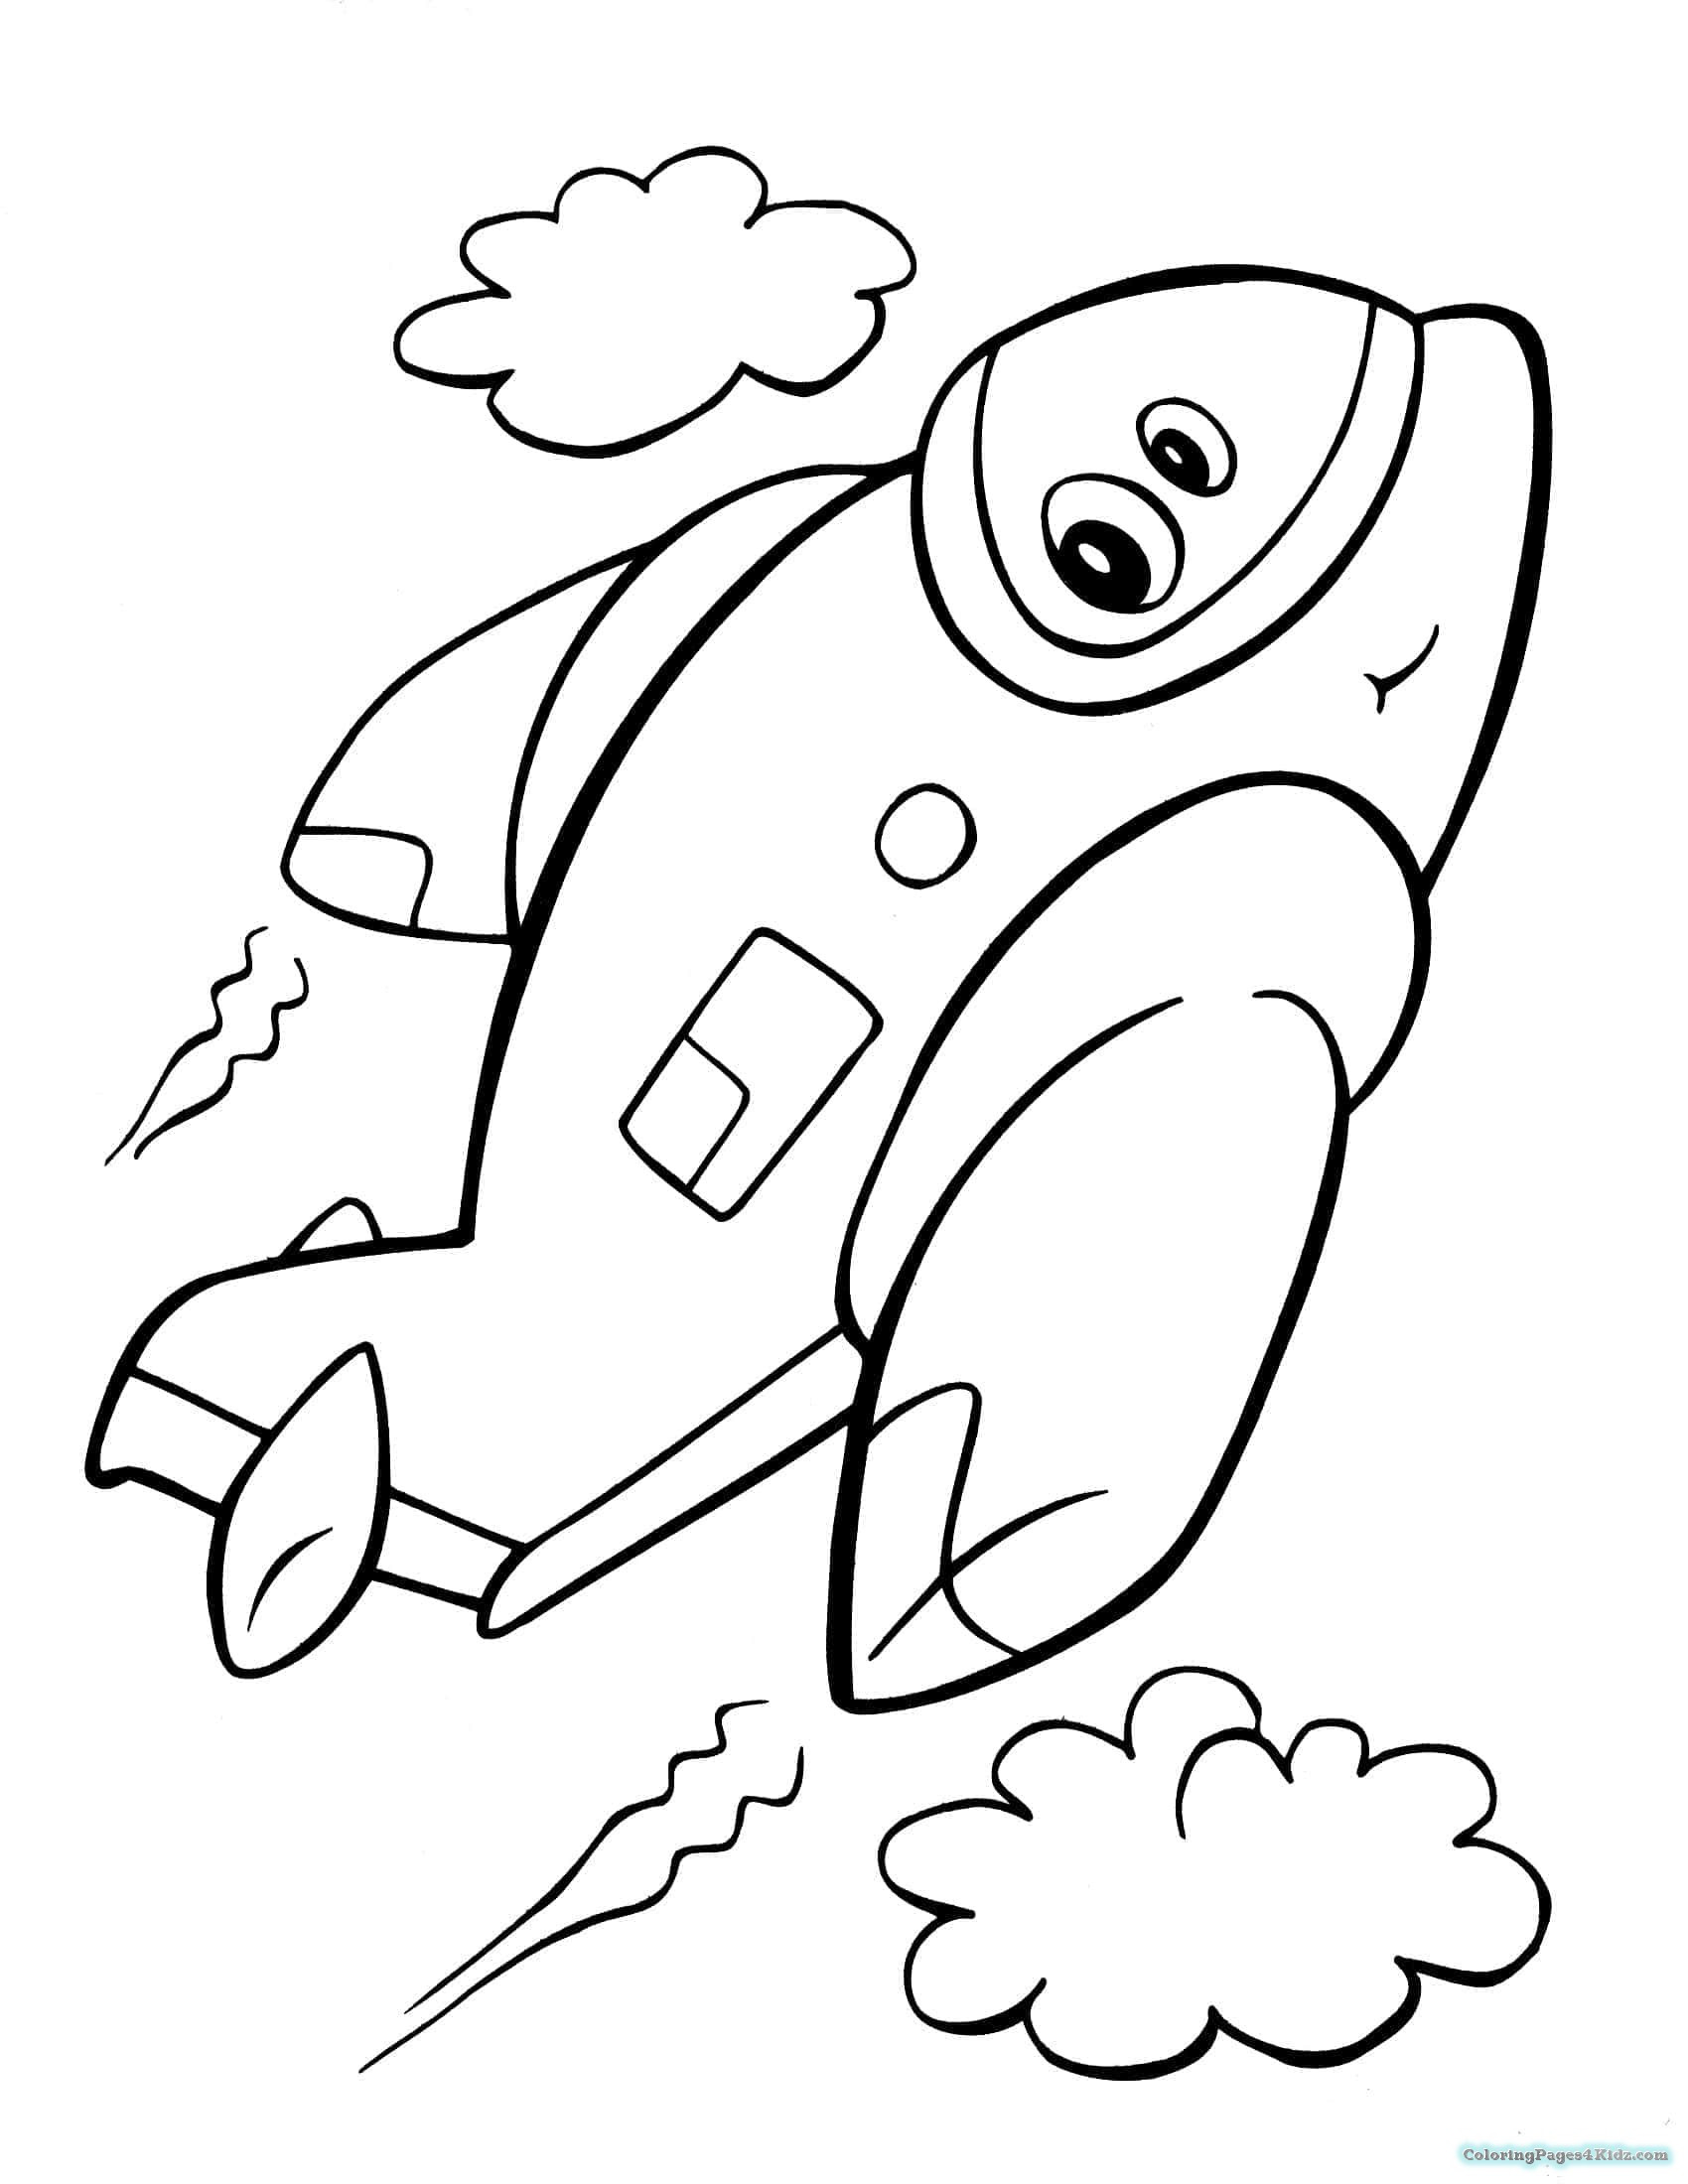 Giant Coloring Books For Toddlers  Crayola Giant Coloring Pages Planes